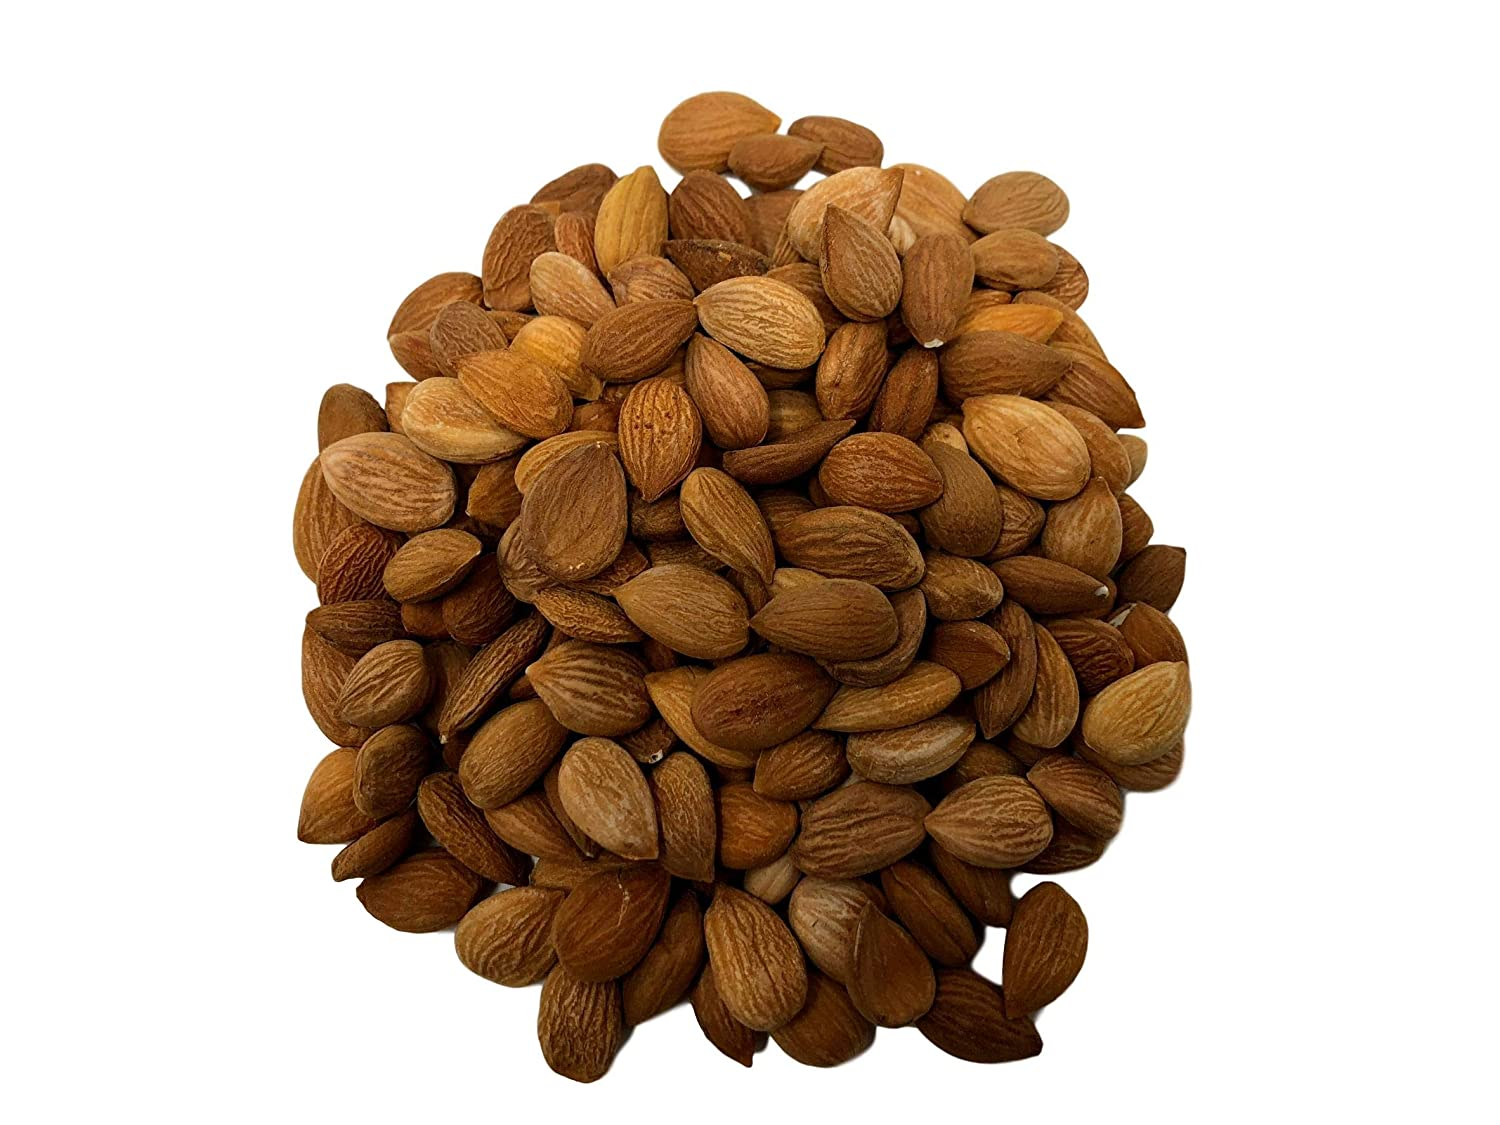 NUTS U.S. - Bitter Apricot Kernels (Seeds) | Unpasteurized and Non-GMO | No Sulphure | Packed In Resealable Bags!!! (2 LBS)